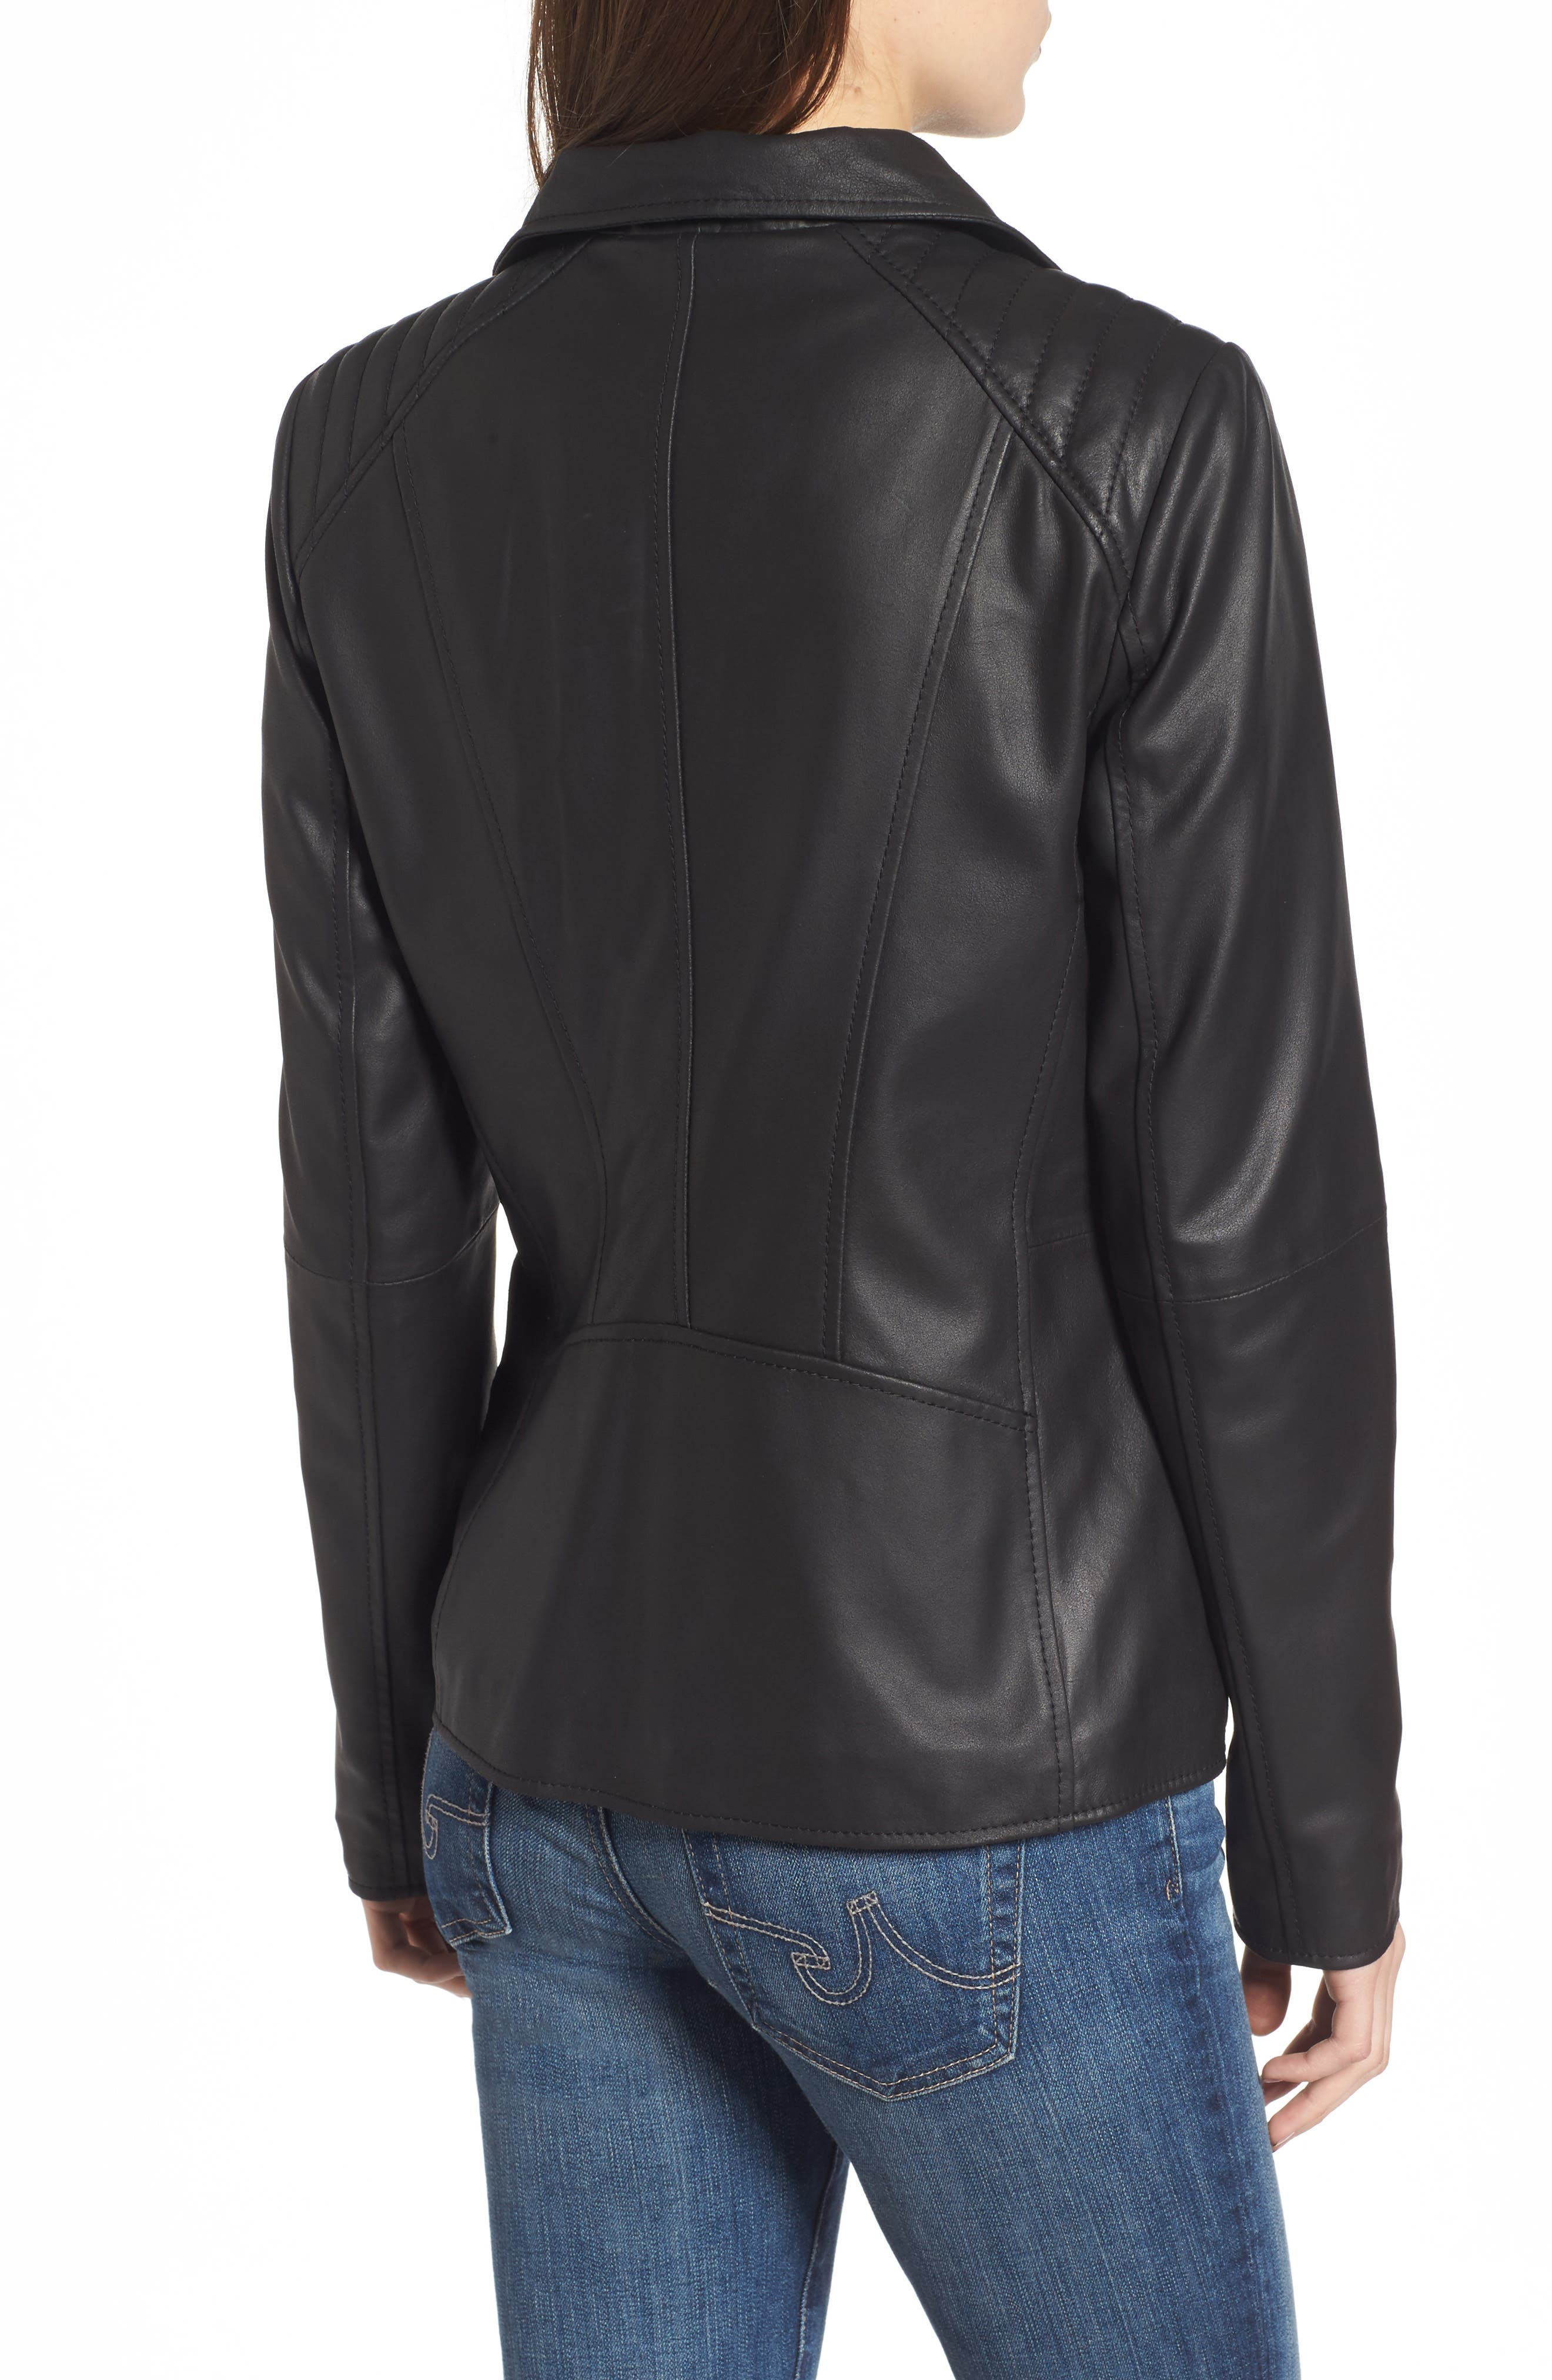 Fabian Feather Leather Jacket,                             Alternate thumbnail 2, color,